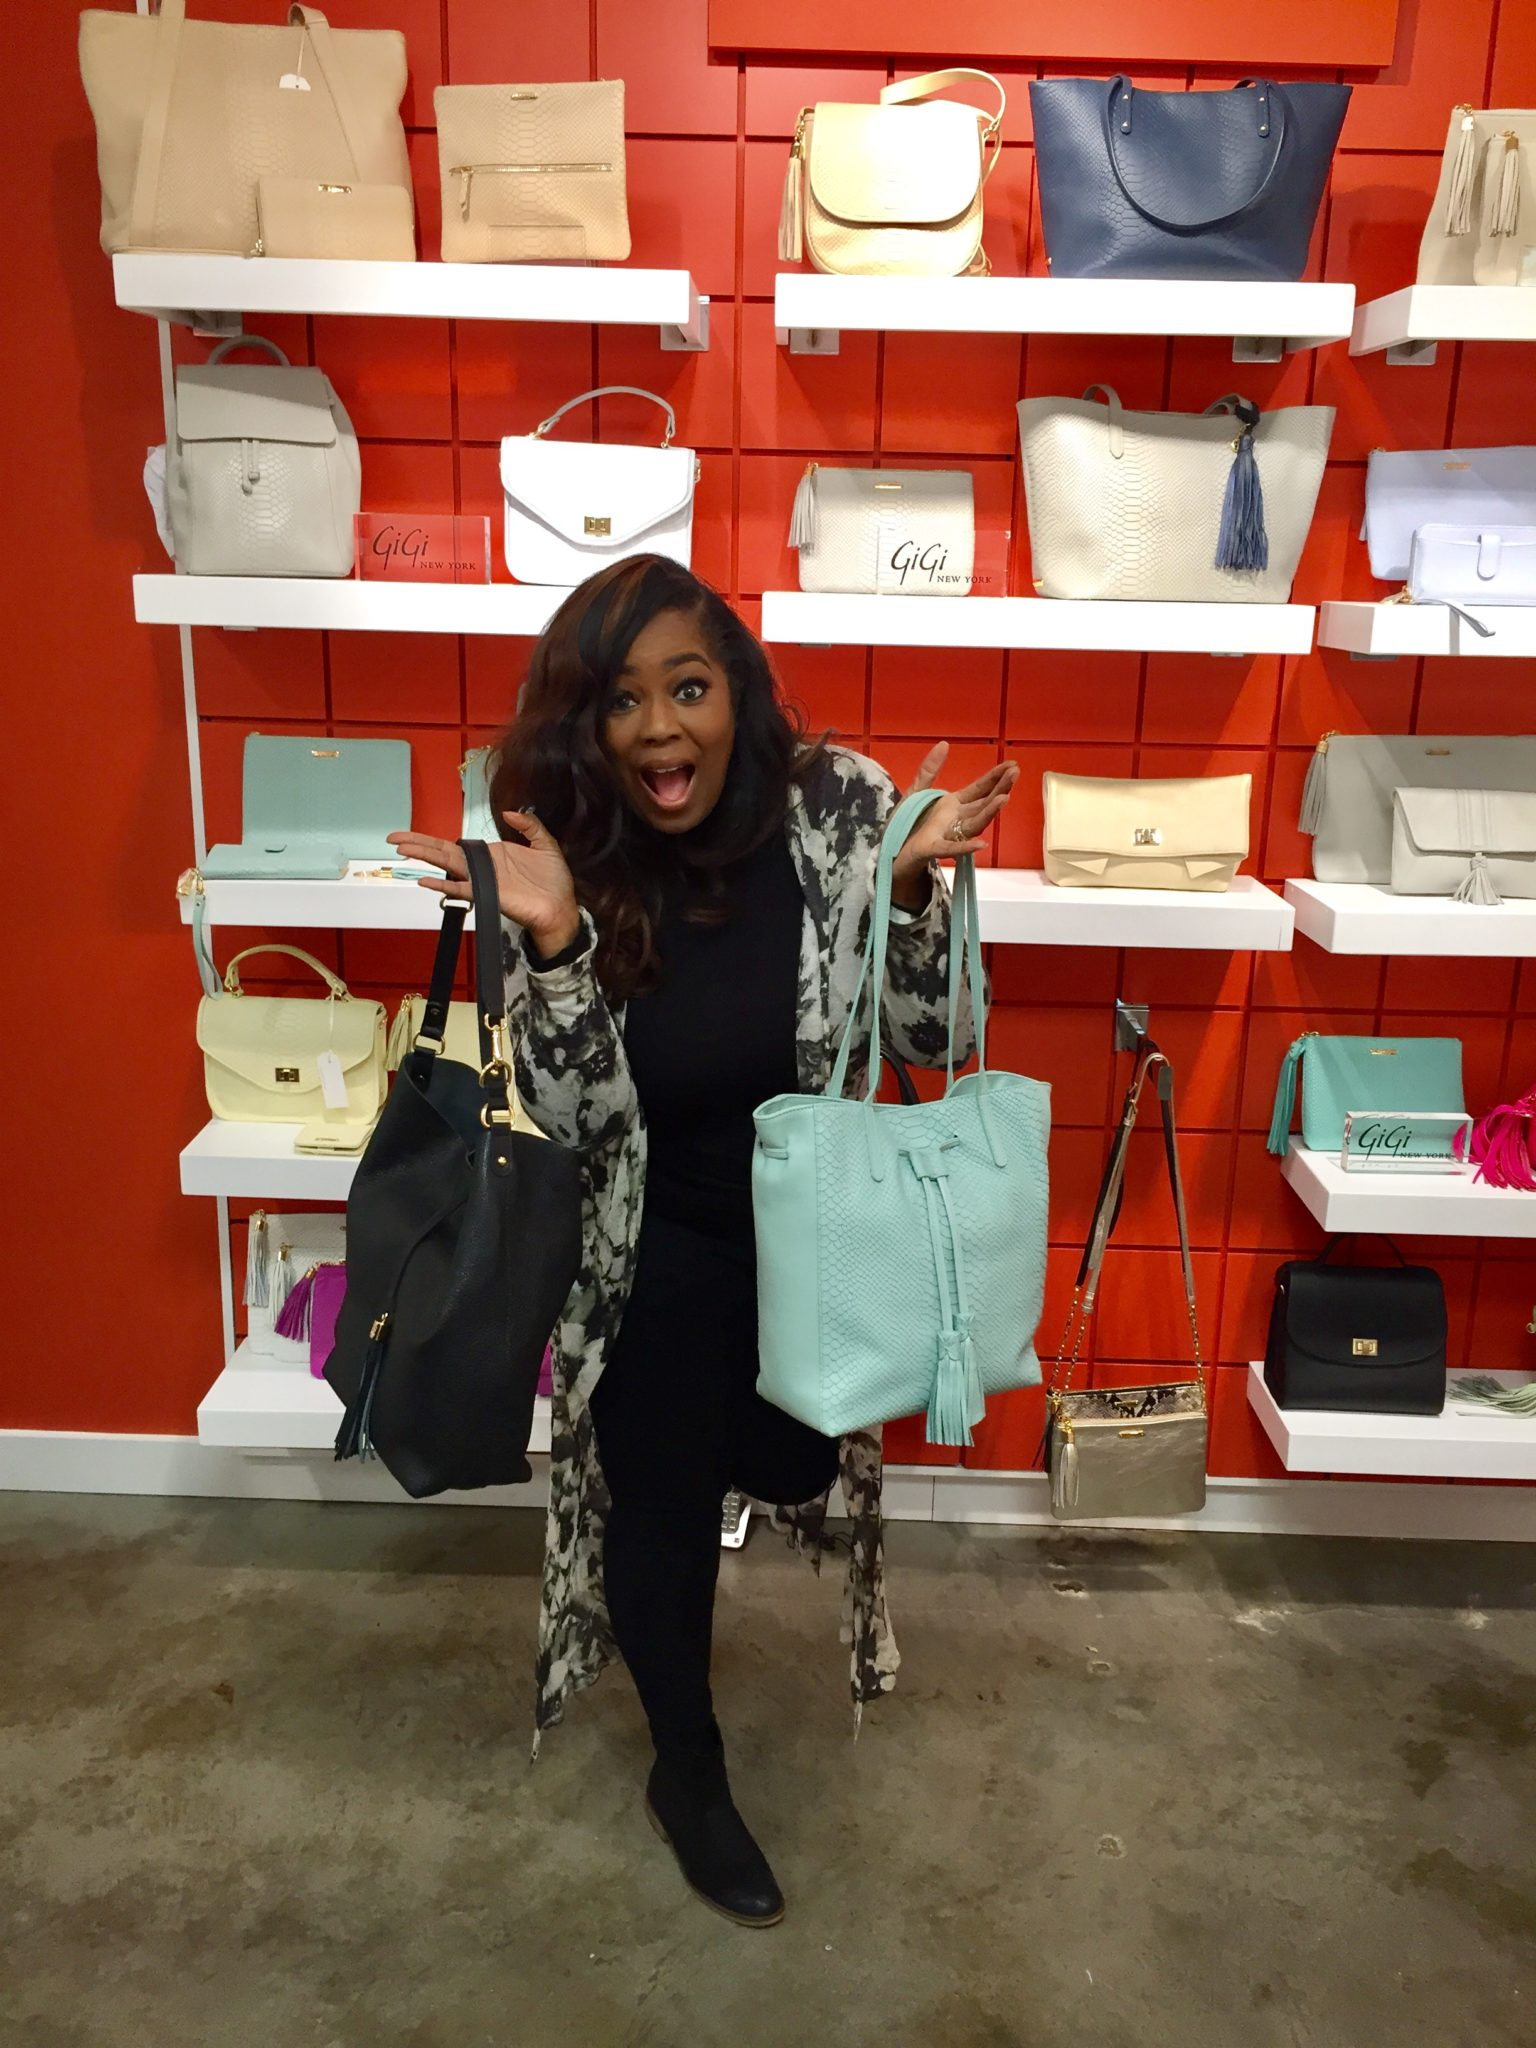 A Visit To The Annual AmericasMart Gift Show